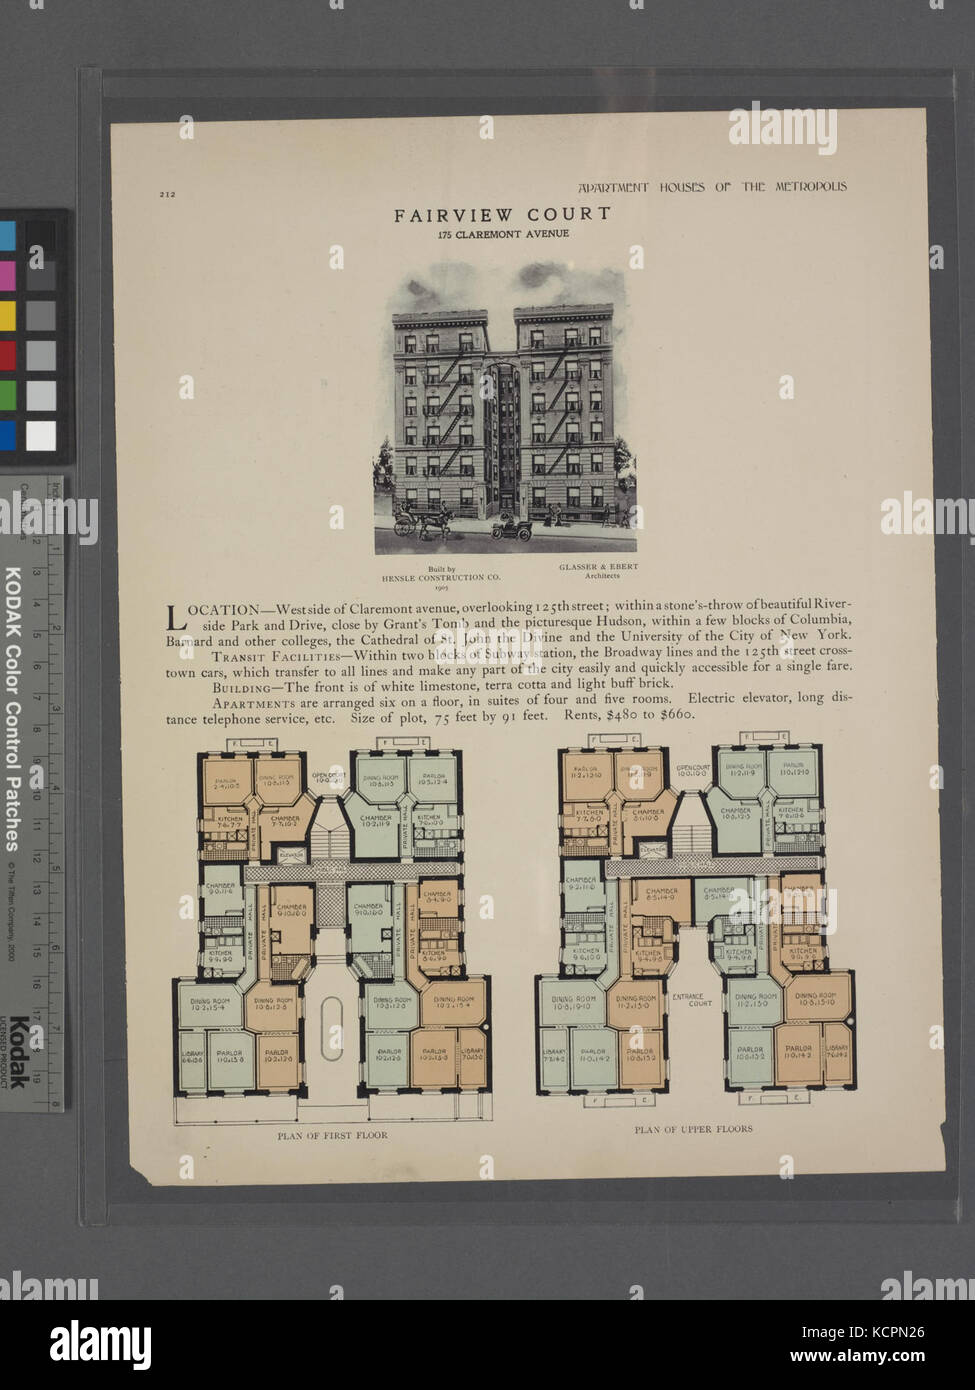 Fairview Court, 175 Claremont Avenue; Plan of first floor; Plan of upper floors (NYPL b12647274 465636) - Stock Image